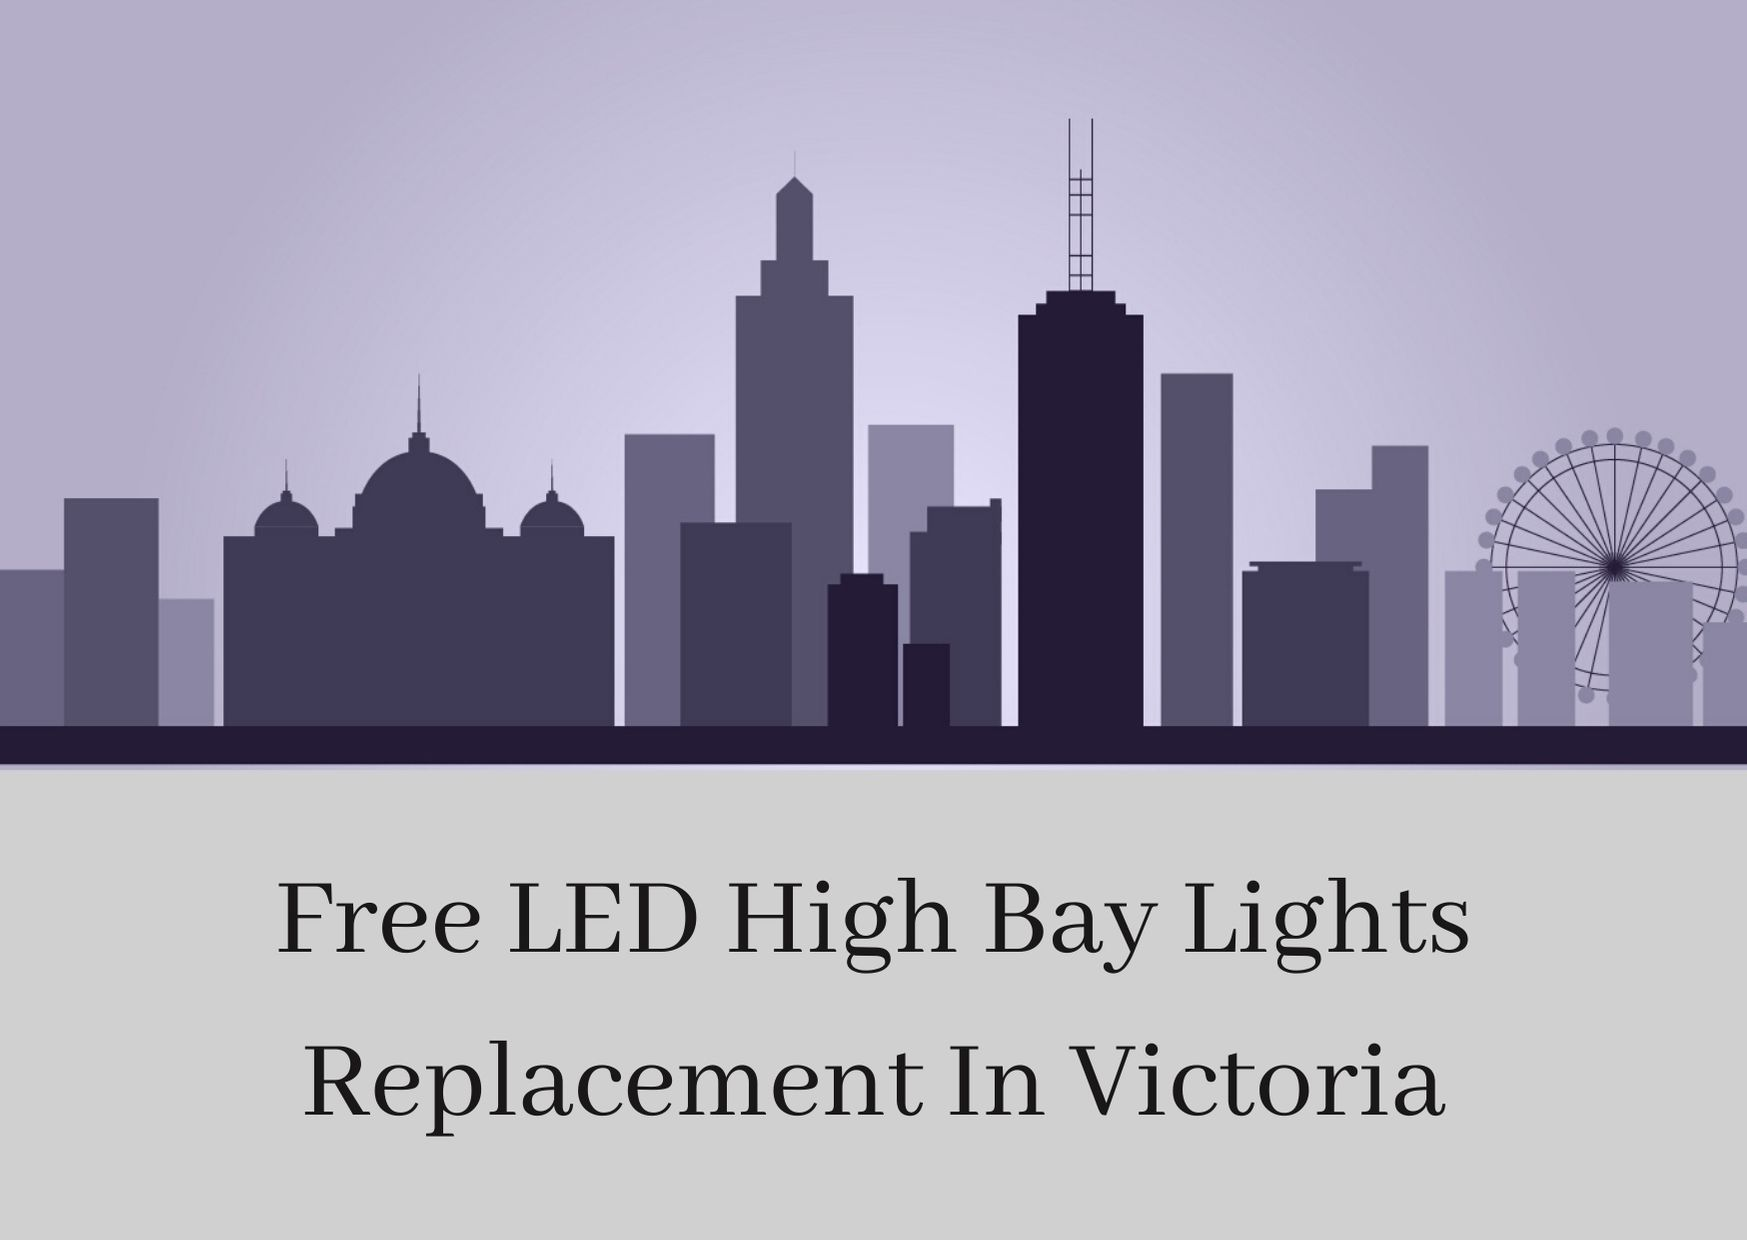 LED High Bay lights replacement in Victoria